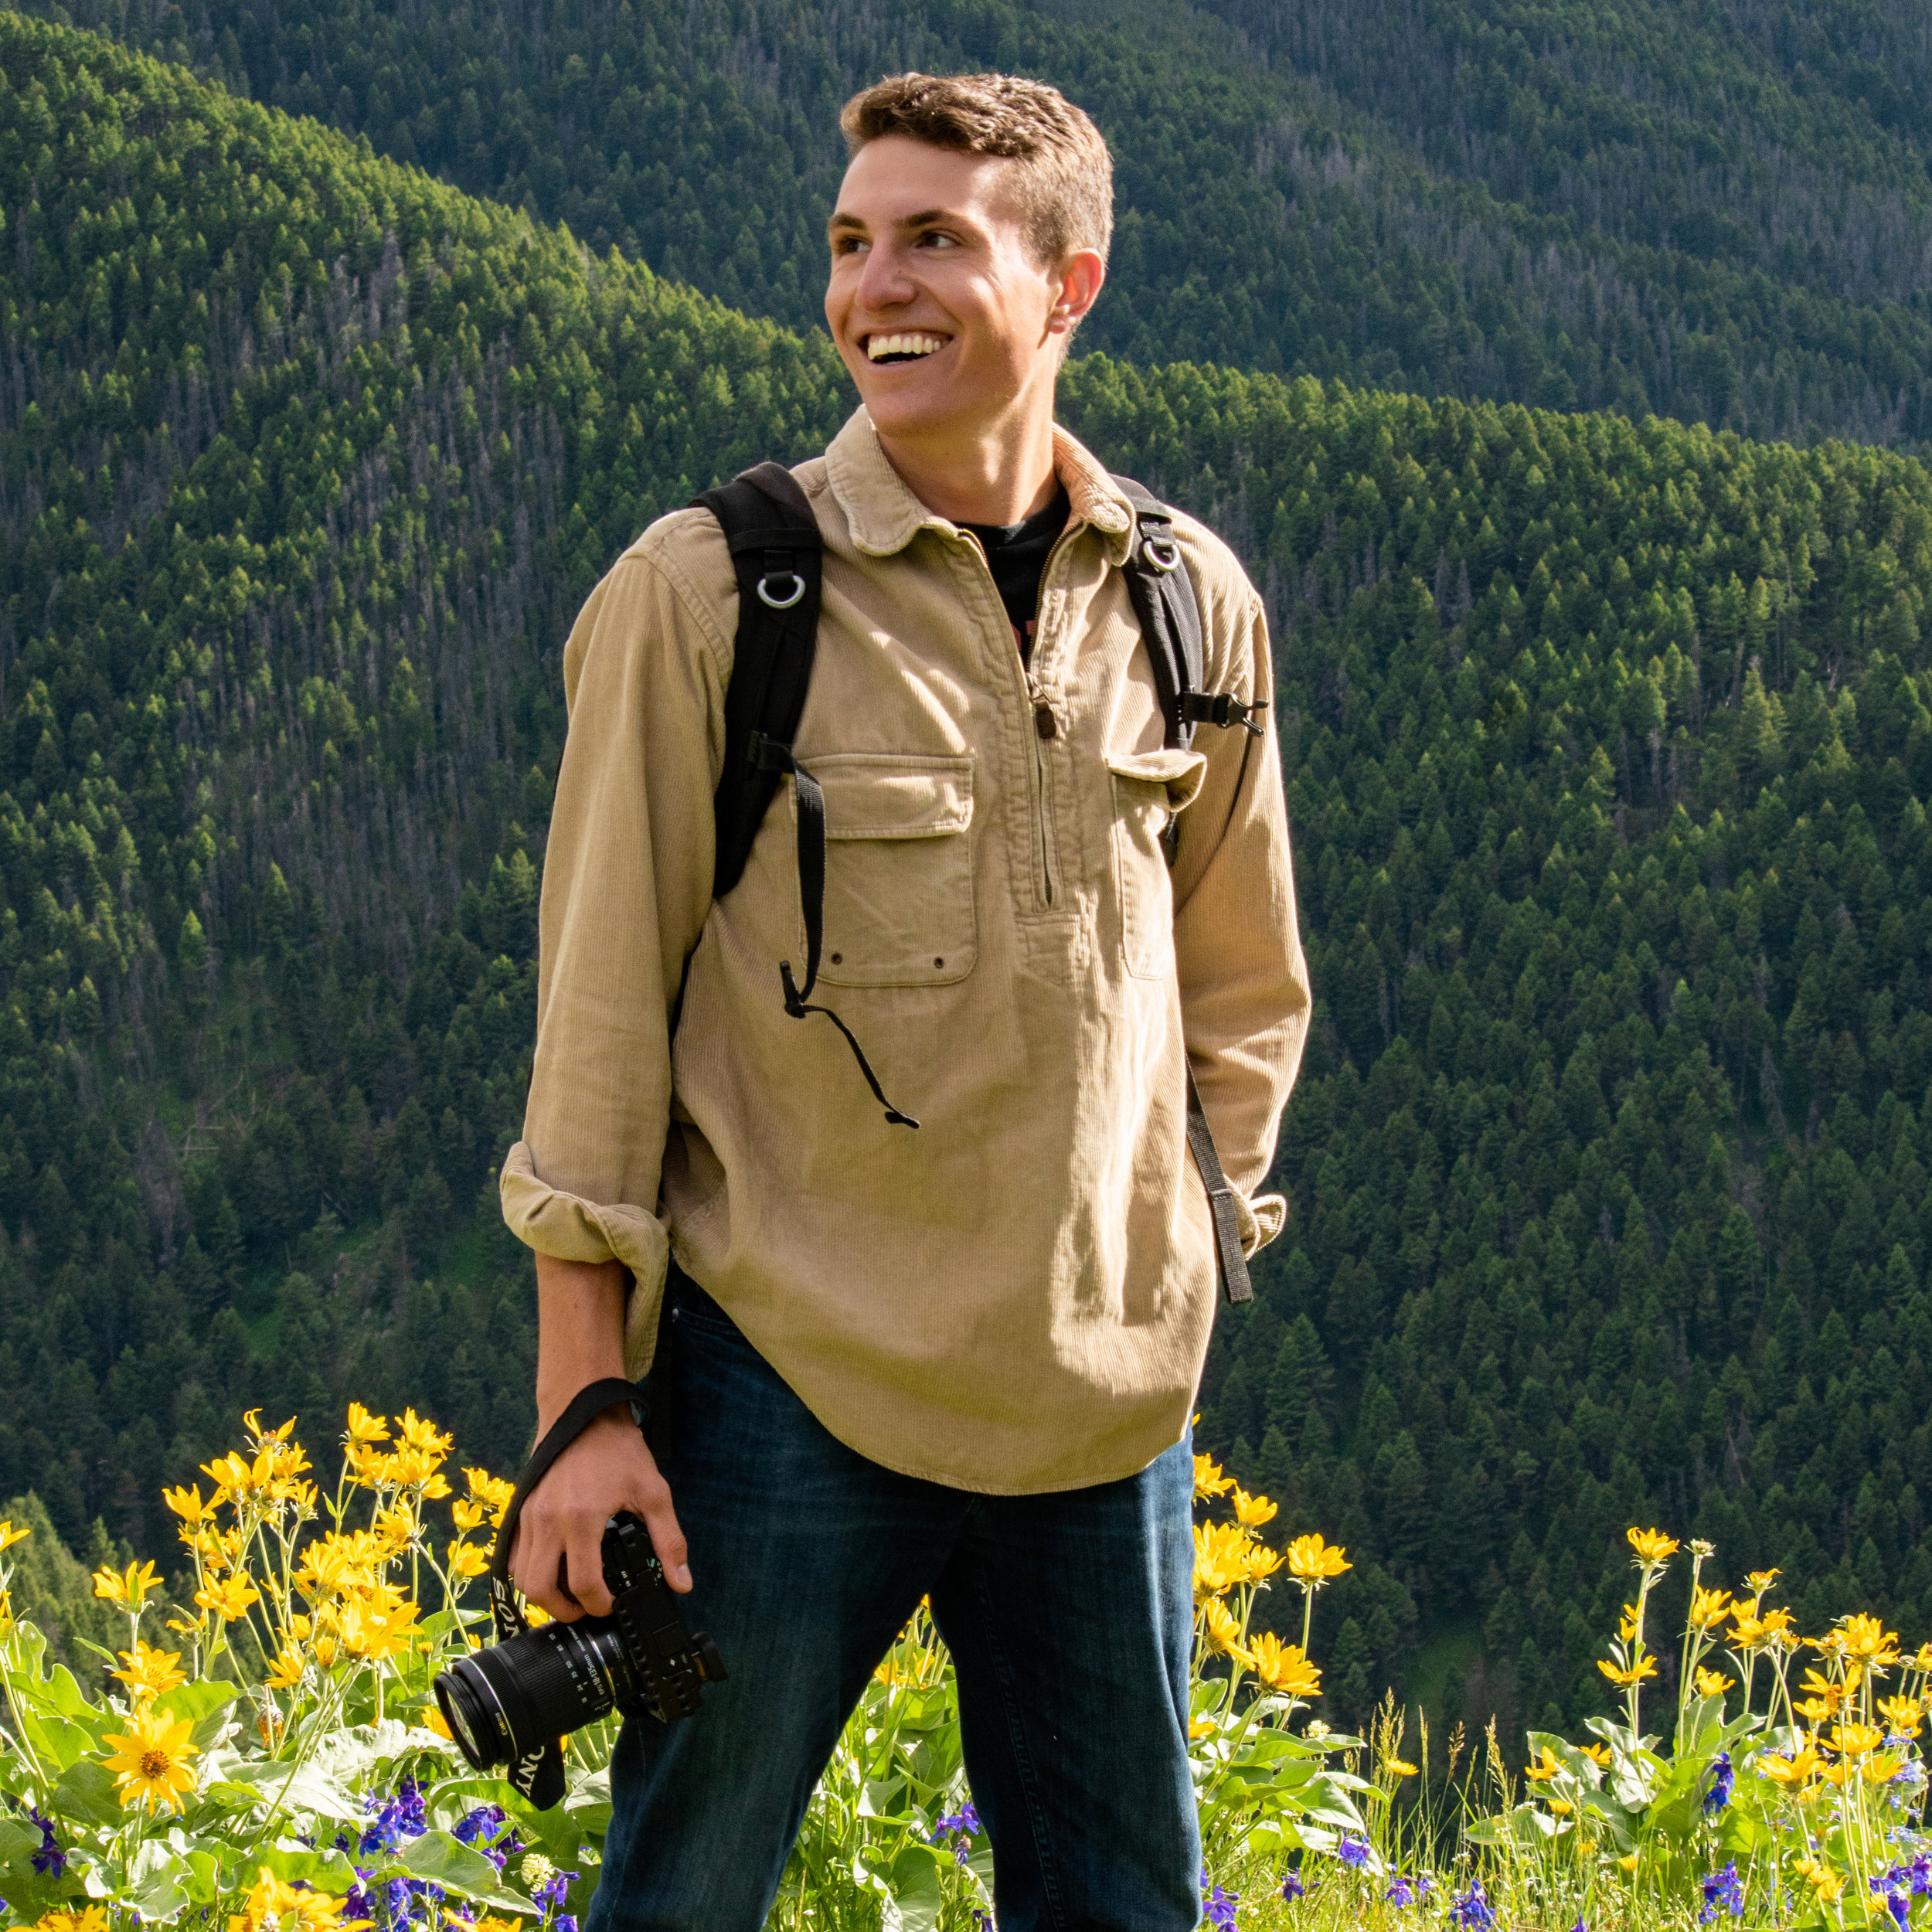 Eric Hyde of the Vativ Media team taking a photo with a DSLR camera in the Crazy Mountains in Montana